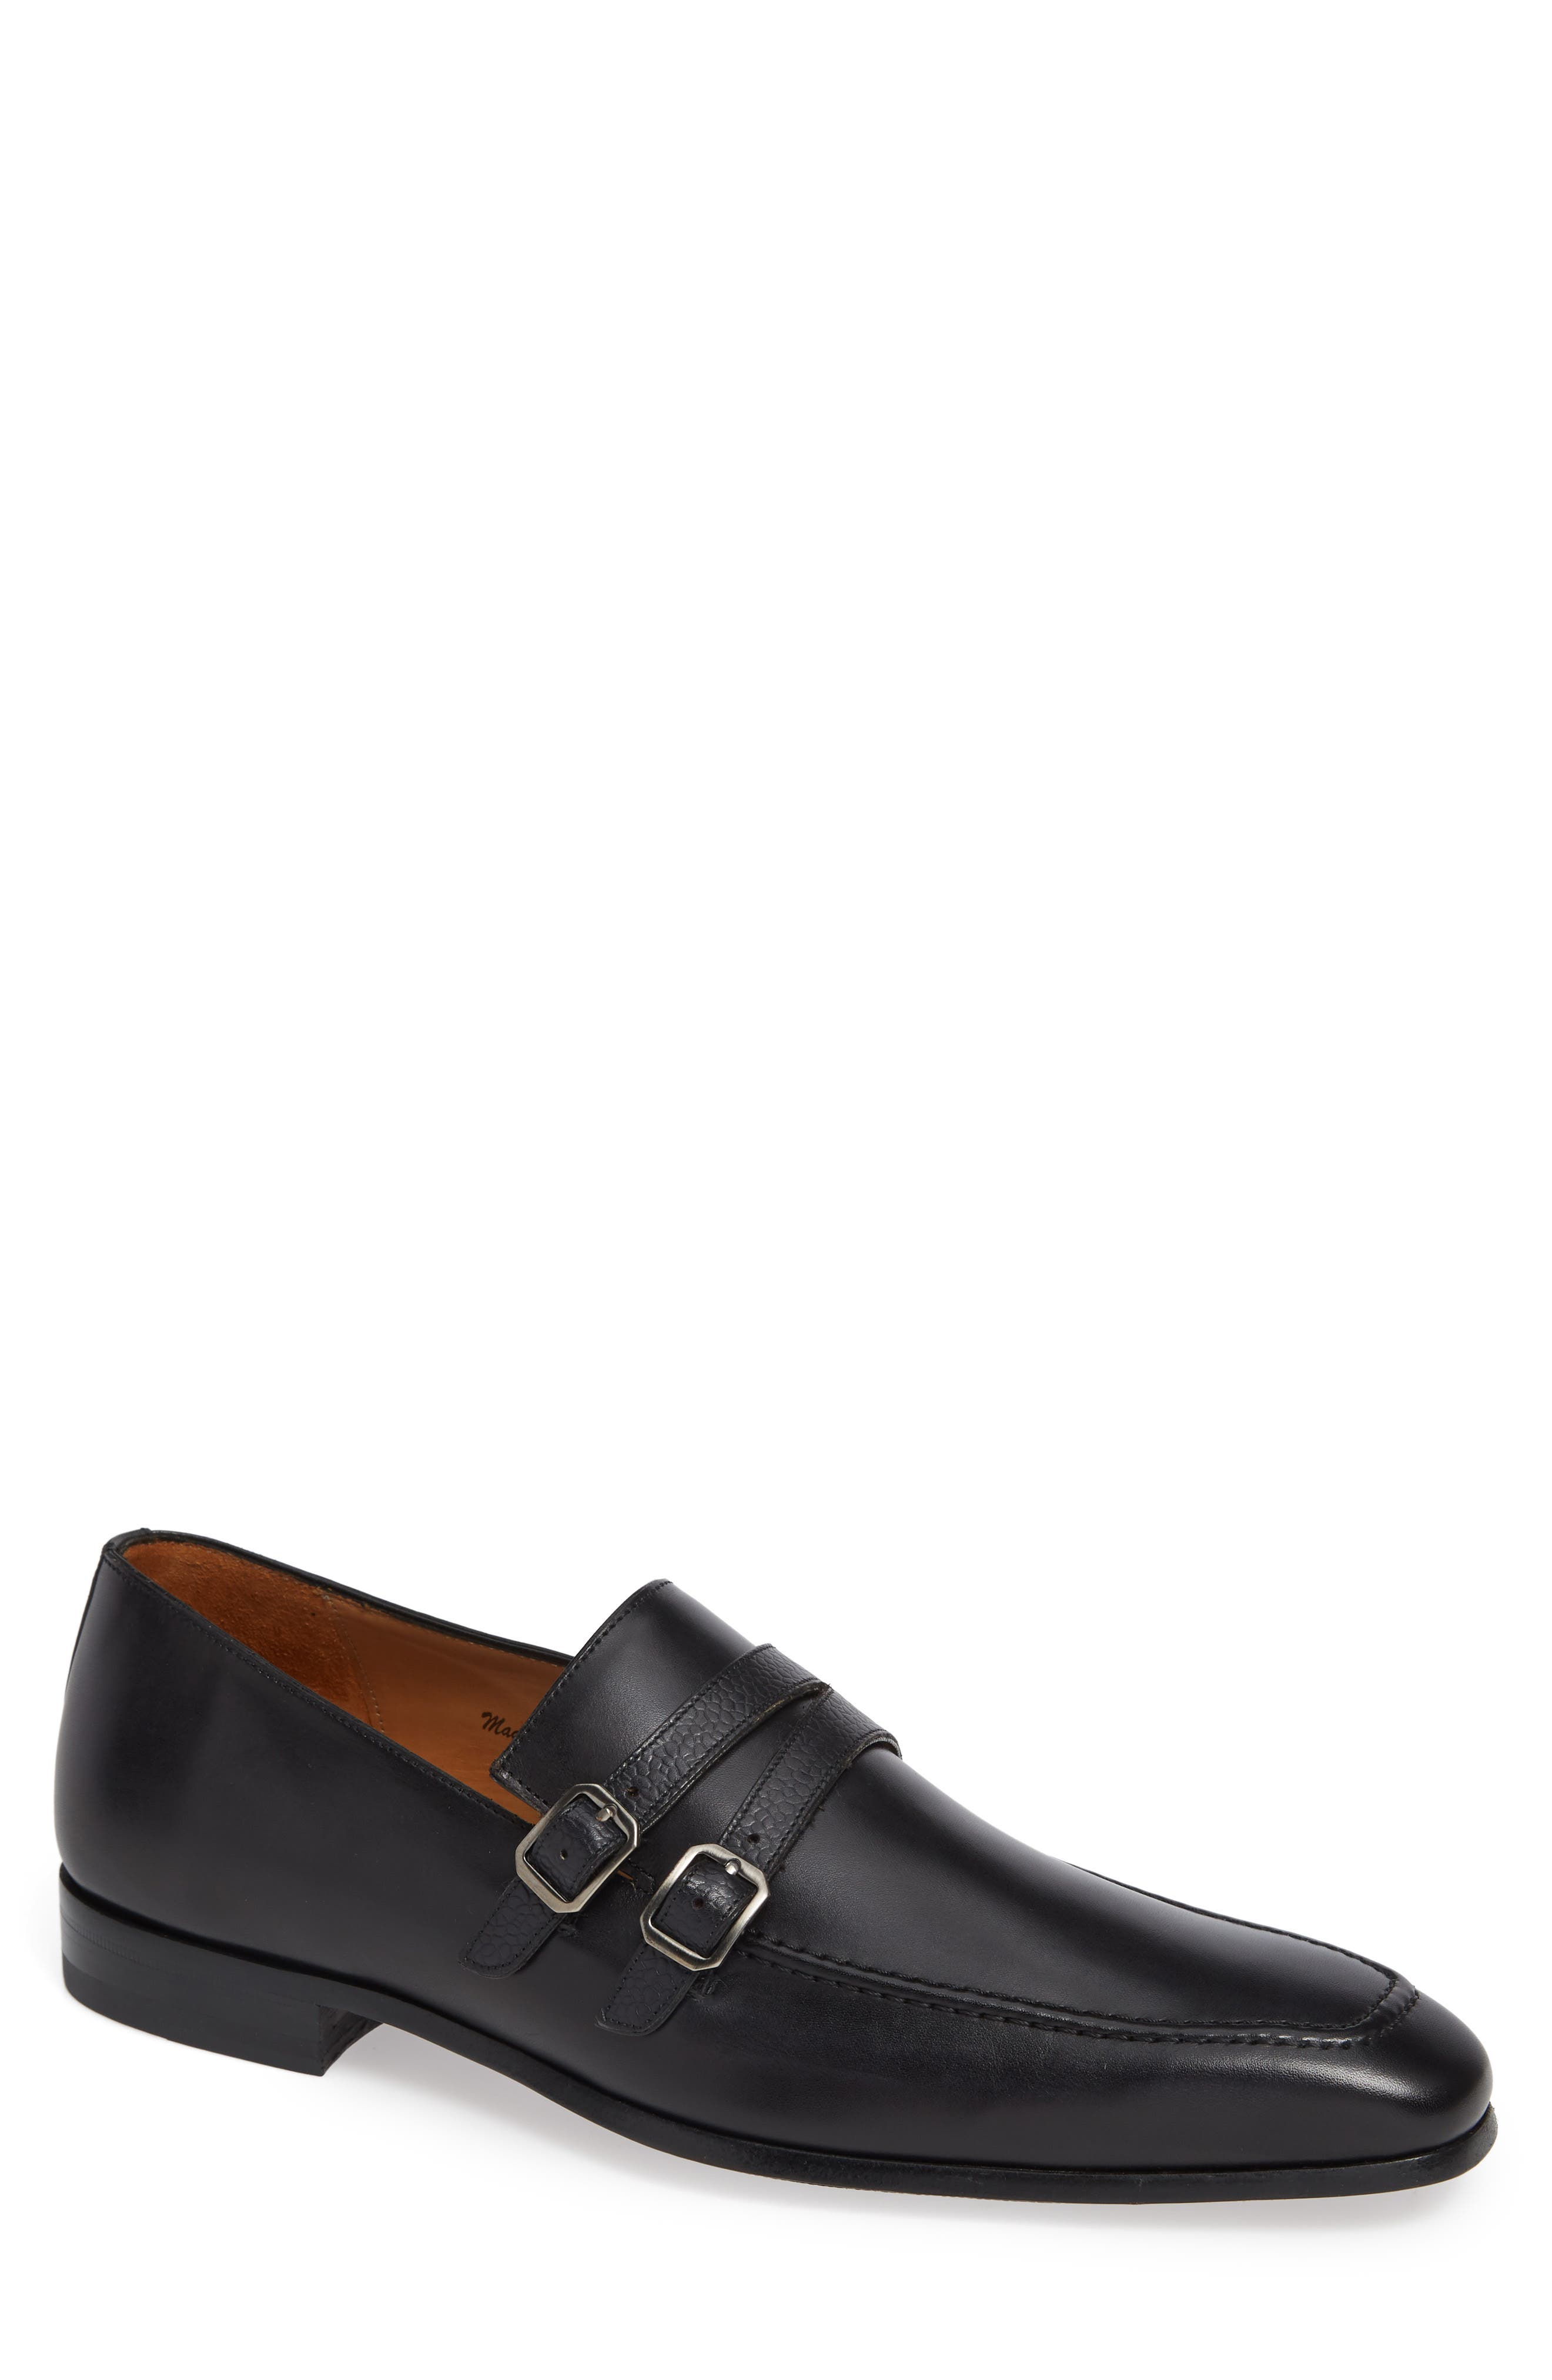 Callas Double Buckle Loafer,                             Main thumbnail 1, color,                             BLACK LEATHER